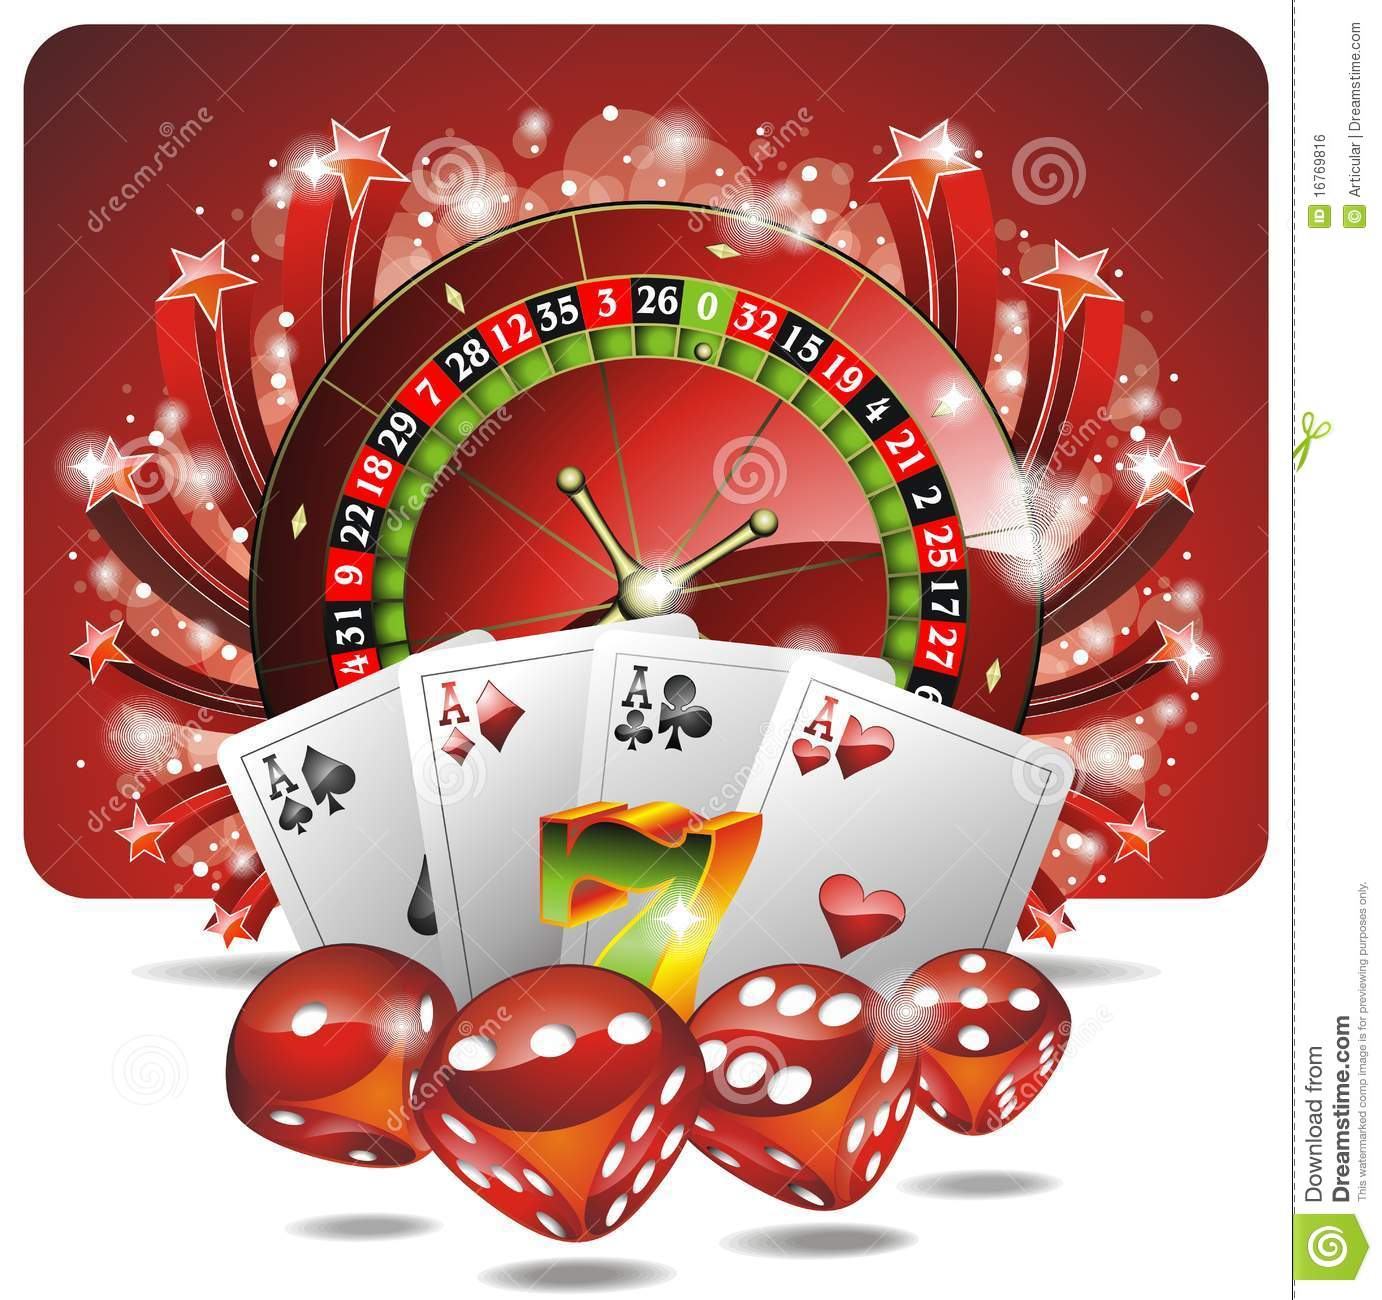 Free gambling casinos online casino game free for fun